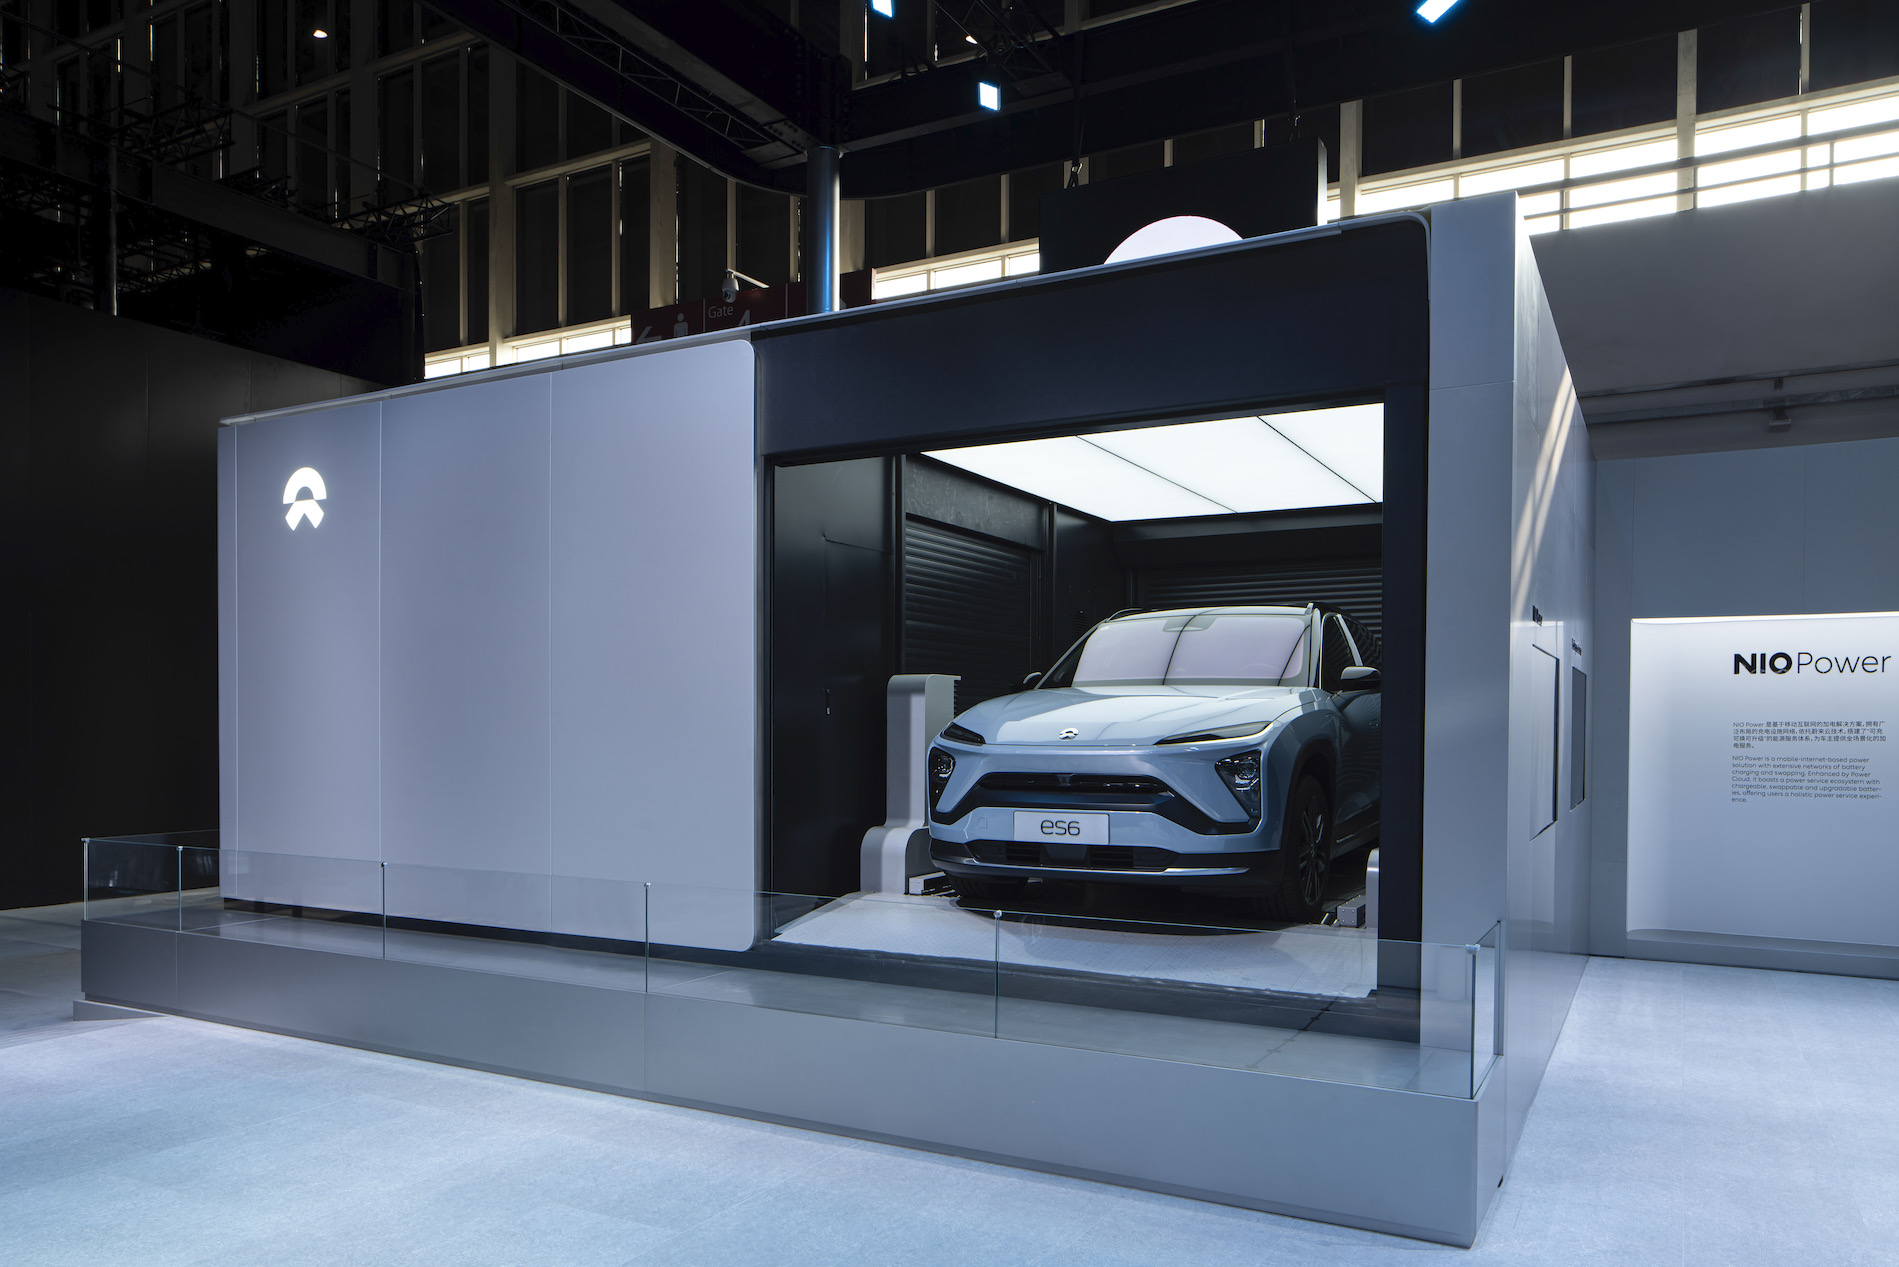 NIO reduces free battery swap benefits for buyers after Oct 12-cnTechPost